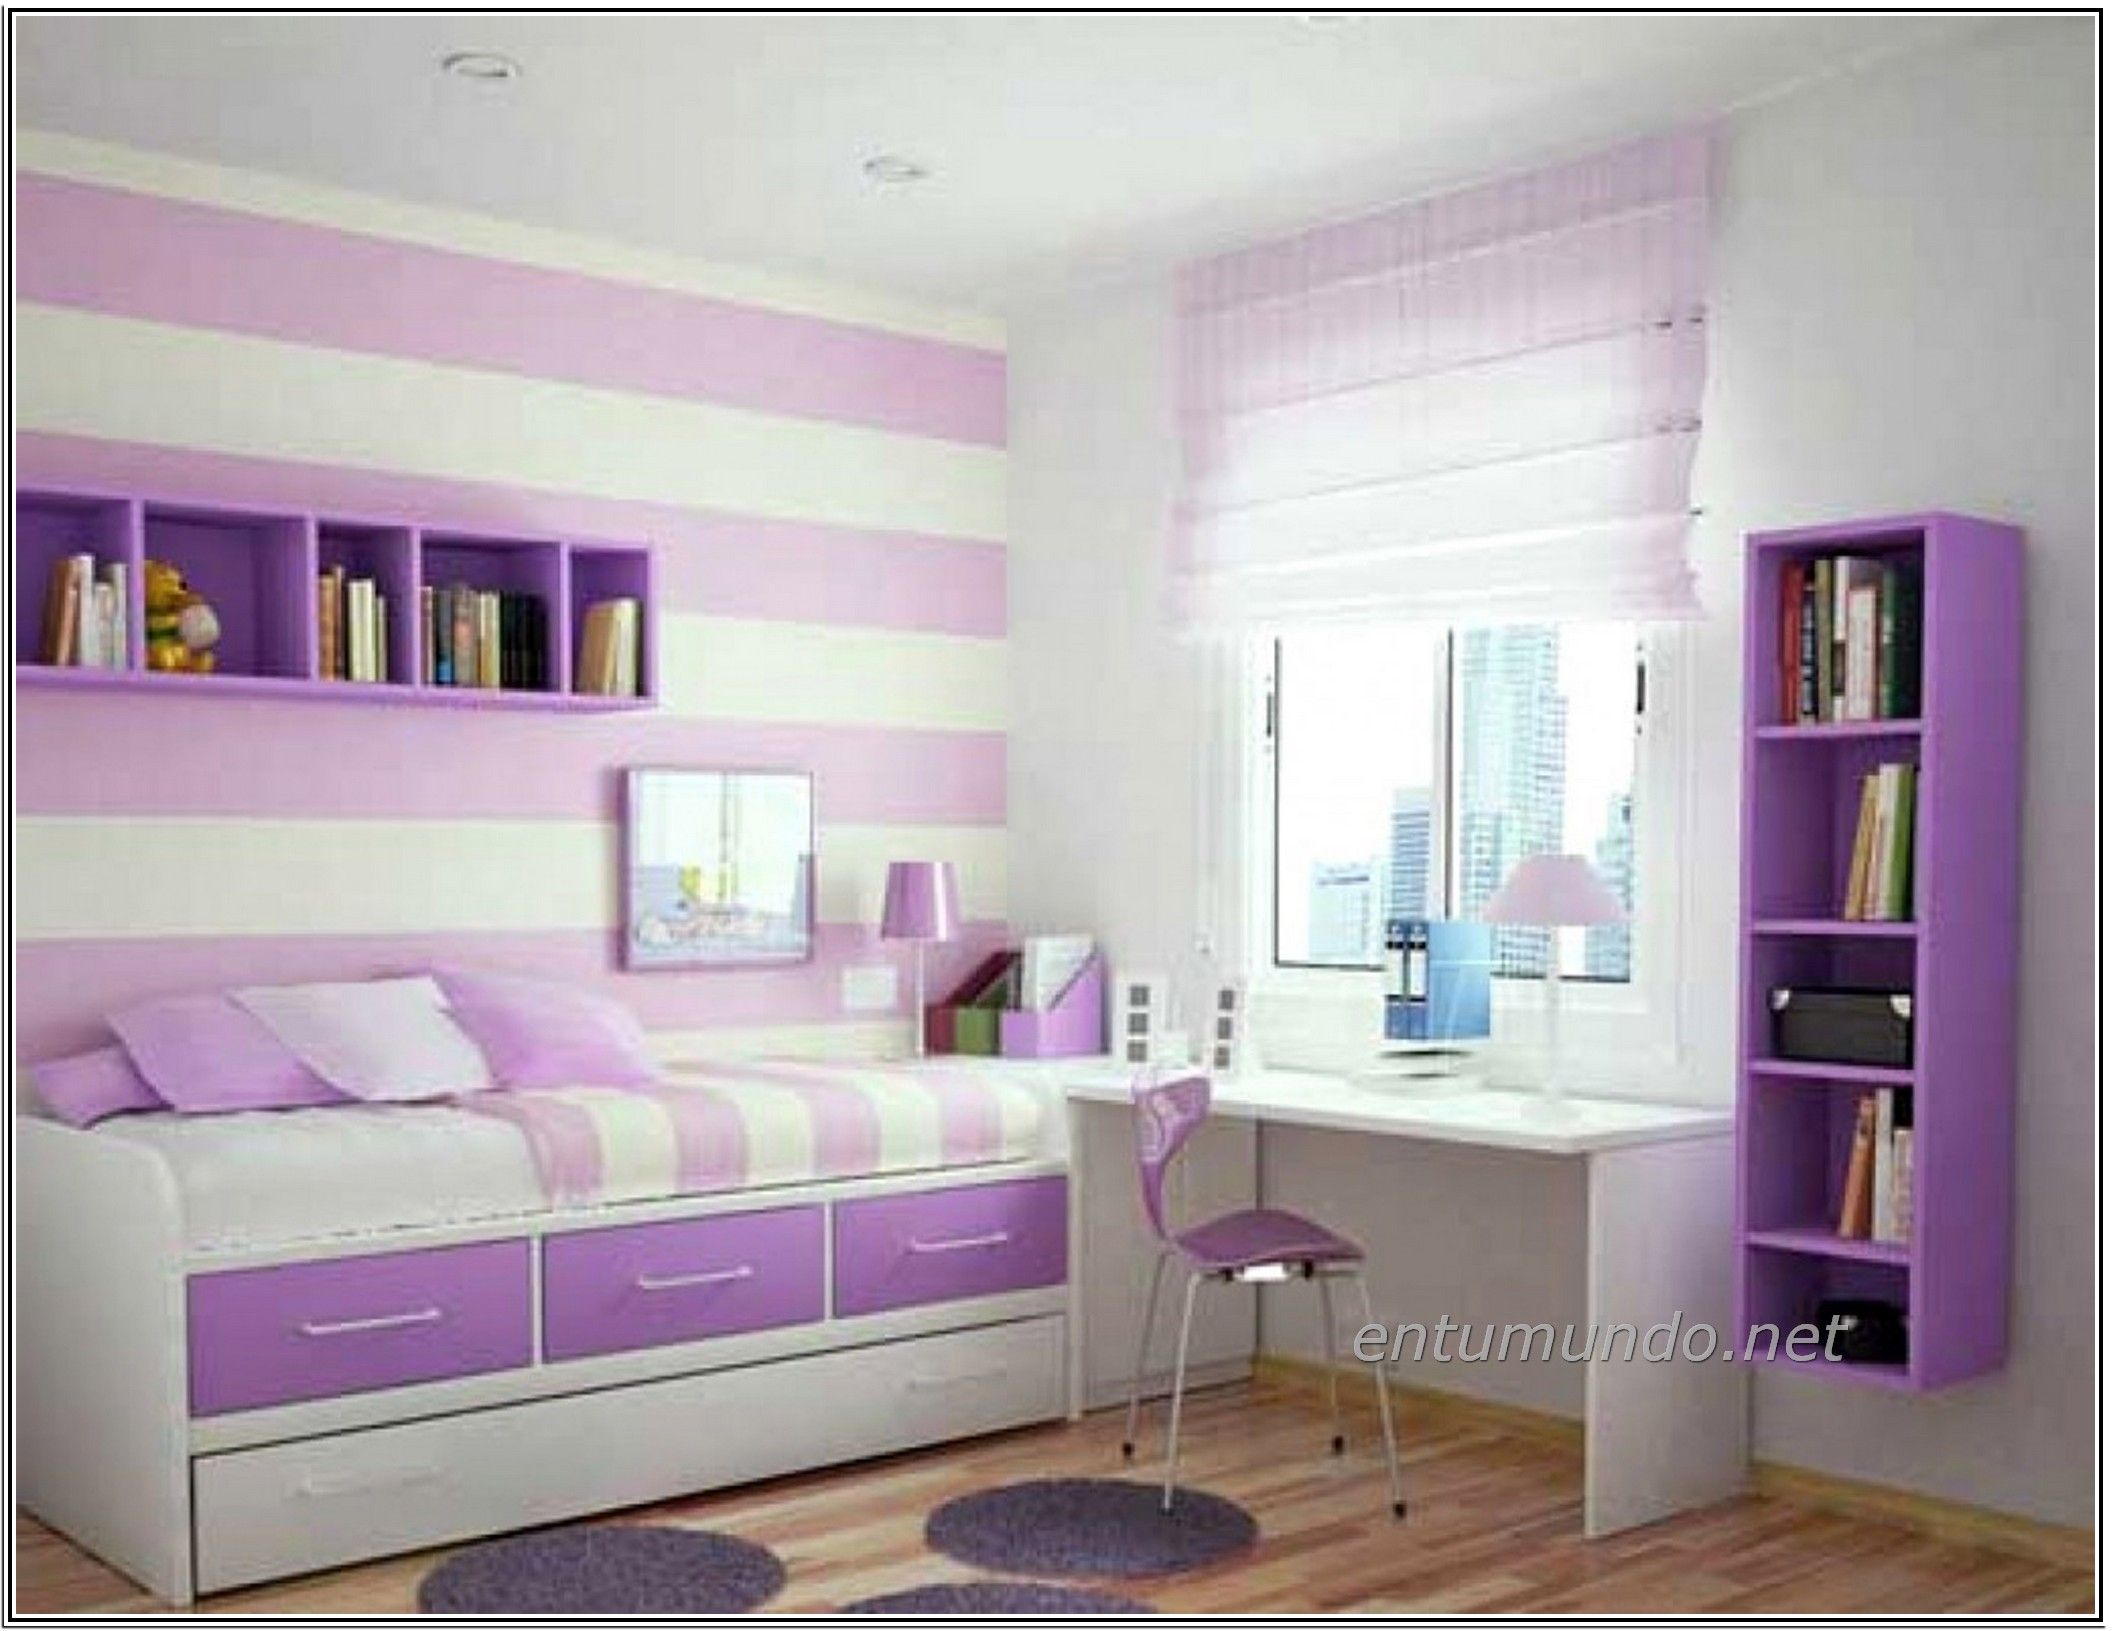 Bedroom Ideas With Bunk Bed For Georgious Cute A Teenage ... on Tween Bedroom Ideas For Small Rooms  id=28157